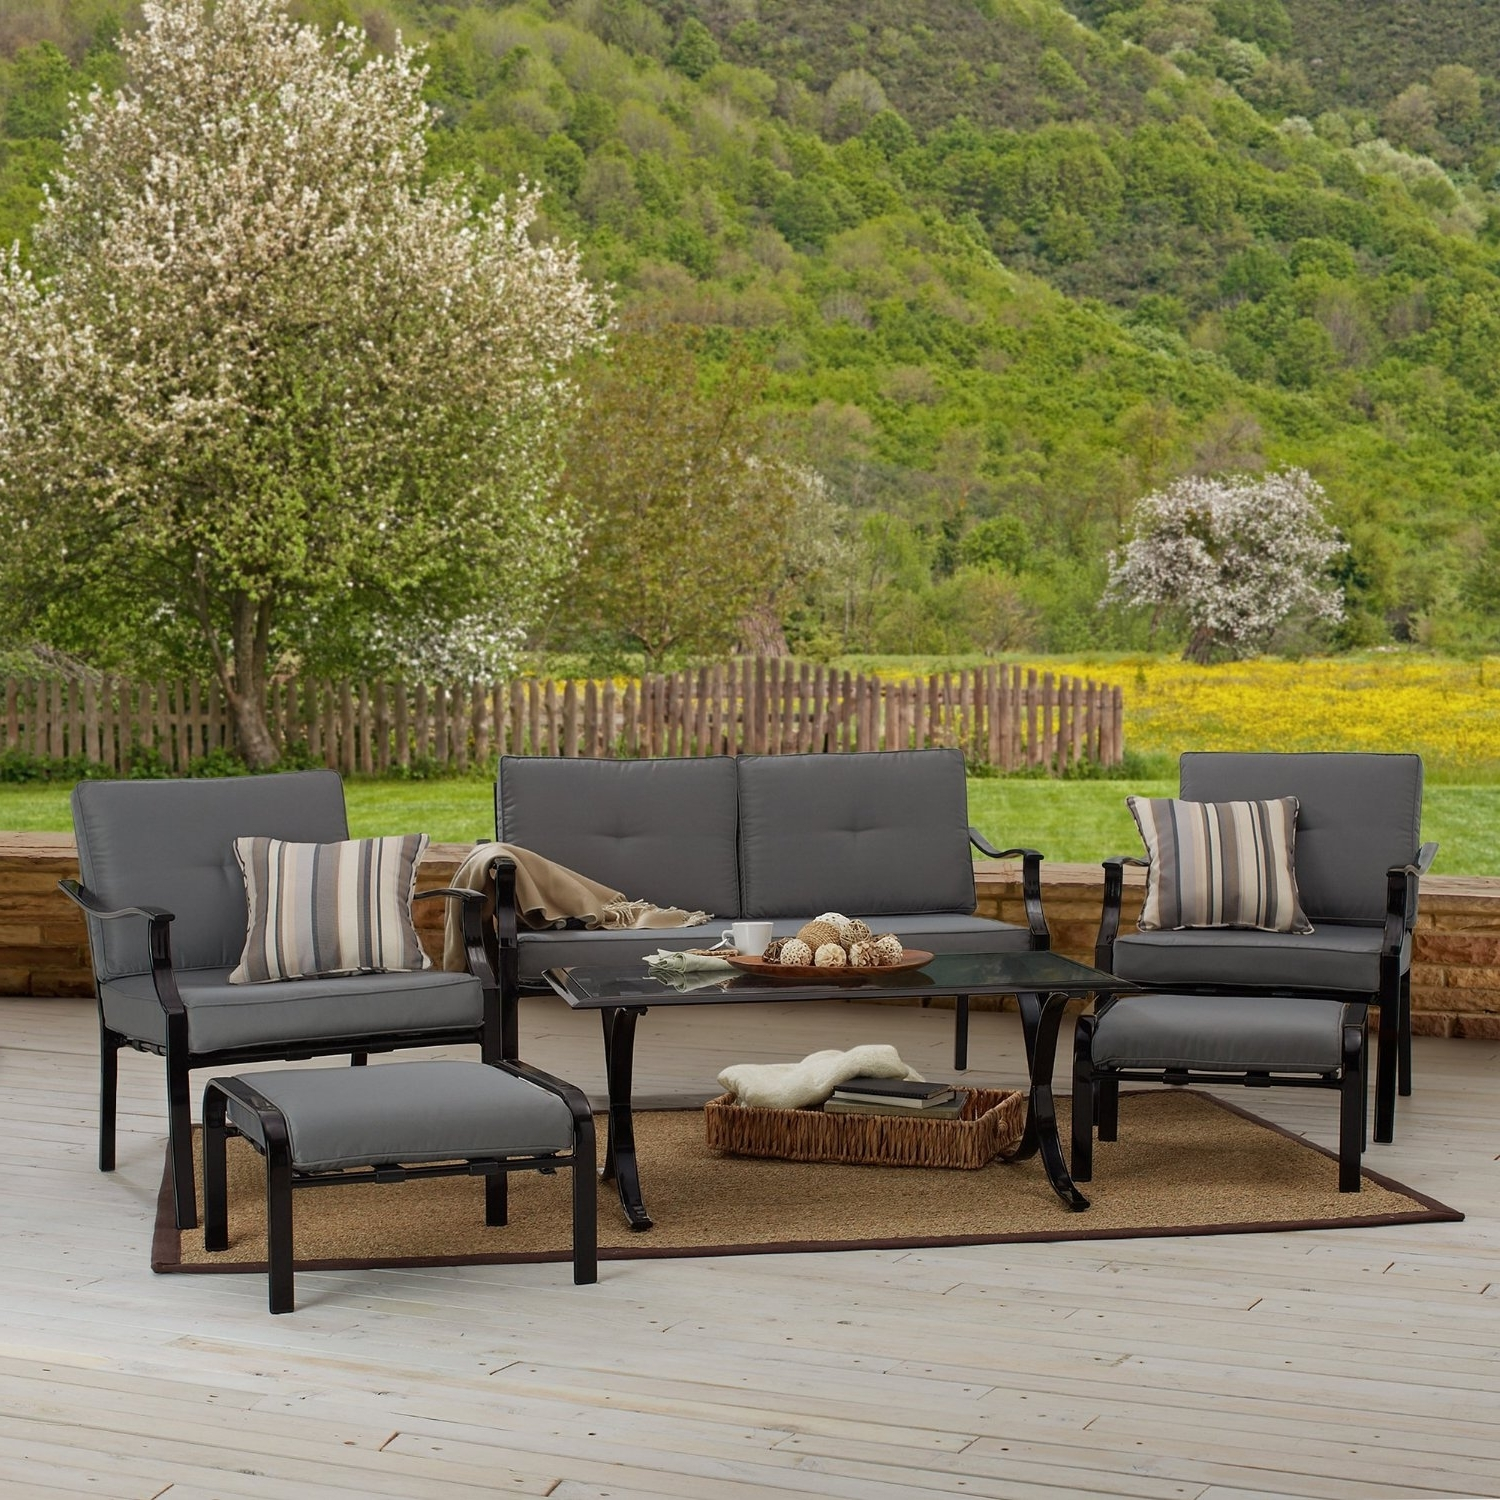 Where To Buy Outdoor Patio Conversation Sets For Under $500 With Regard To Most Popular Patio Conversation Sets Under $ (View 20 of 20)